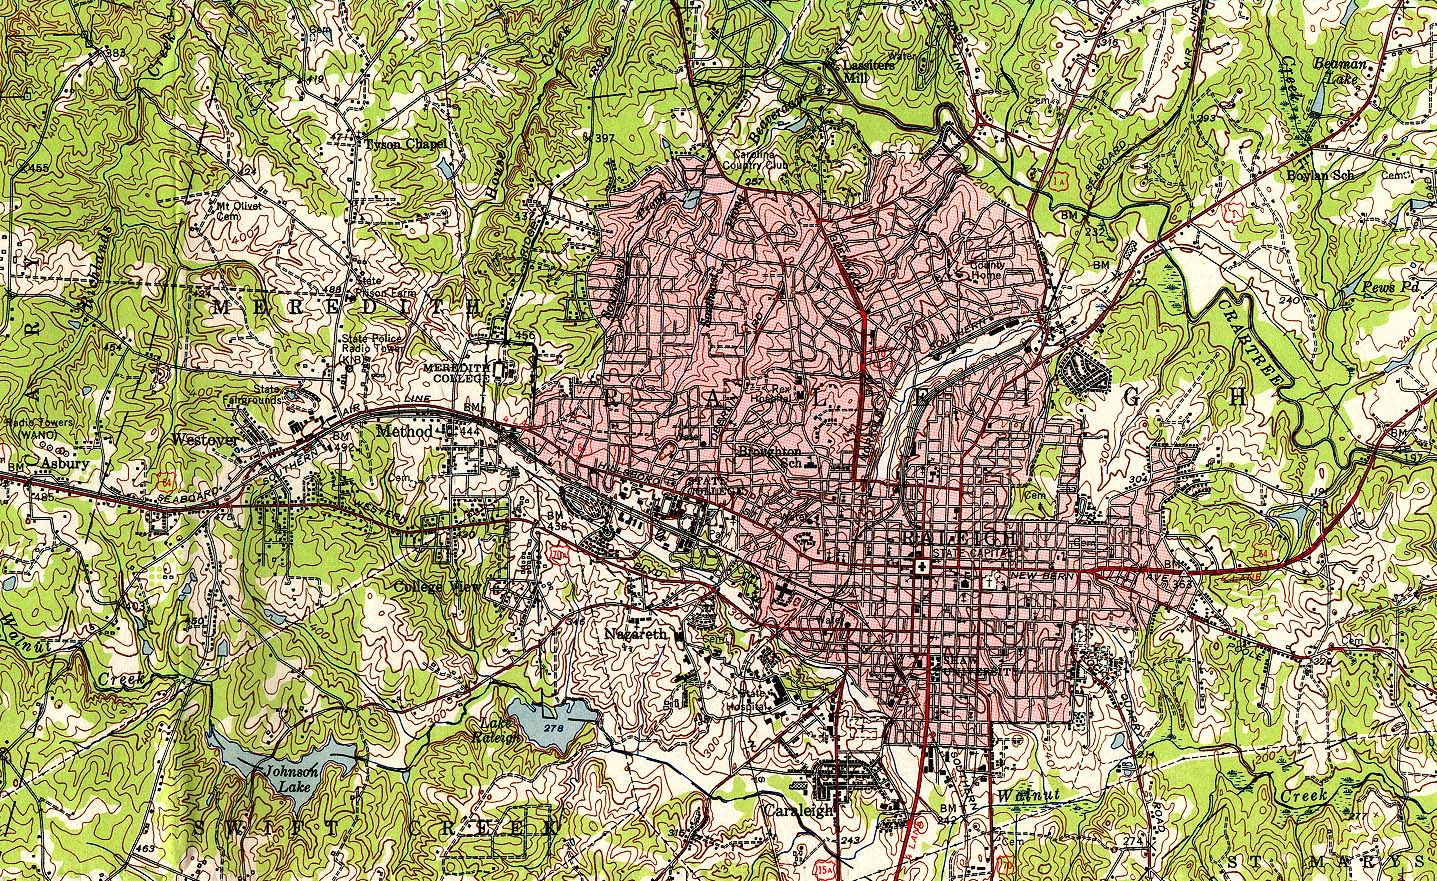 Historical Maps of U.S Cities. Raleigh, North Carolina 1951 Original Scale 1:62,500 U.S. Geological Survey 1951 (839K)